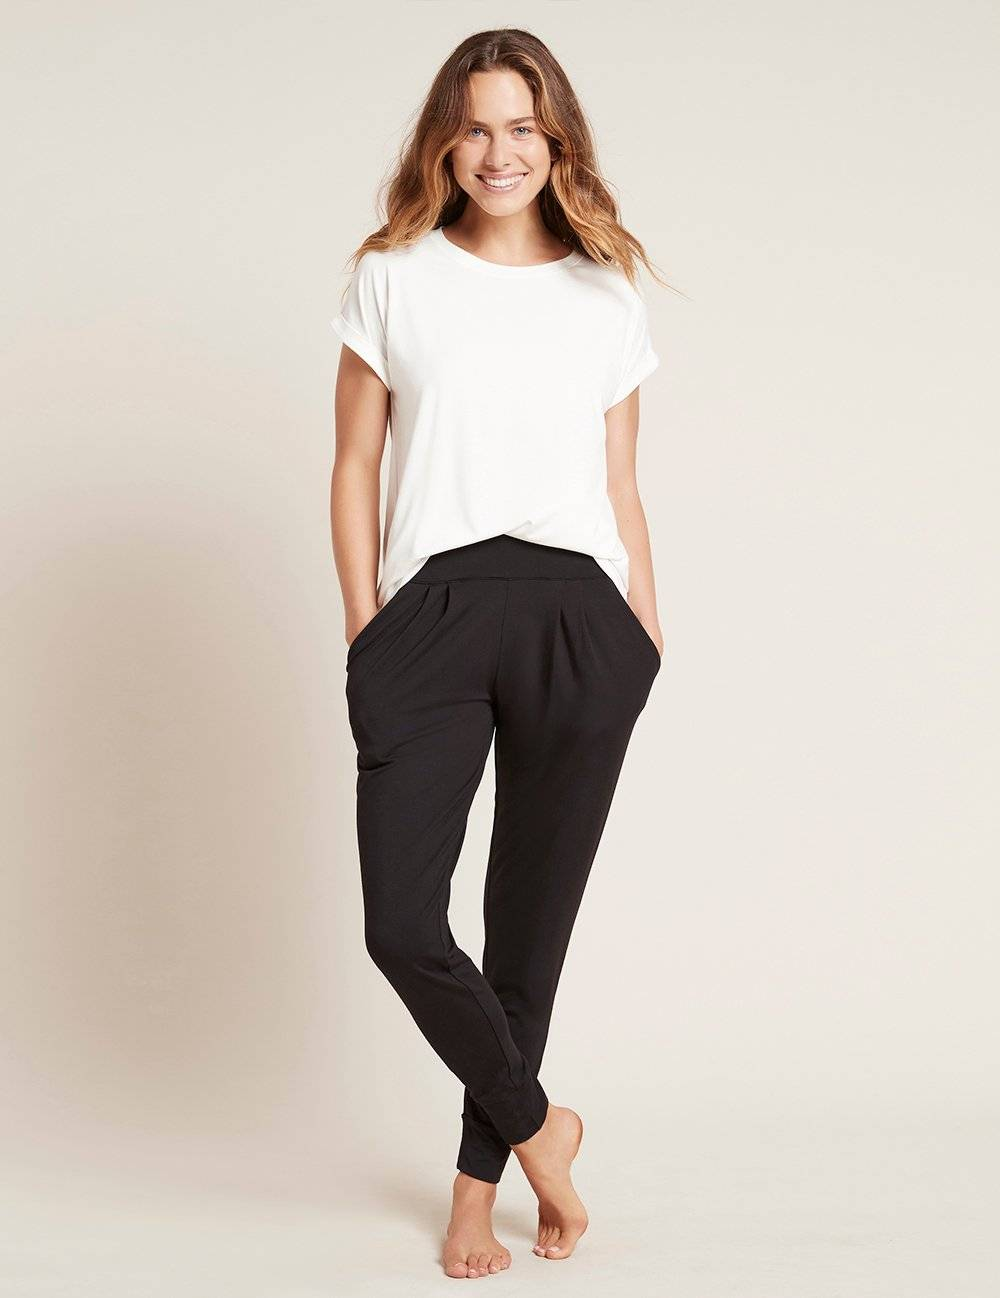 boody cheap sustainable loungewear brand